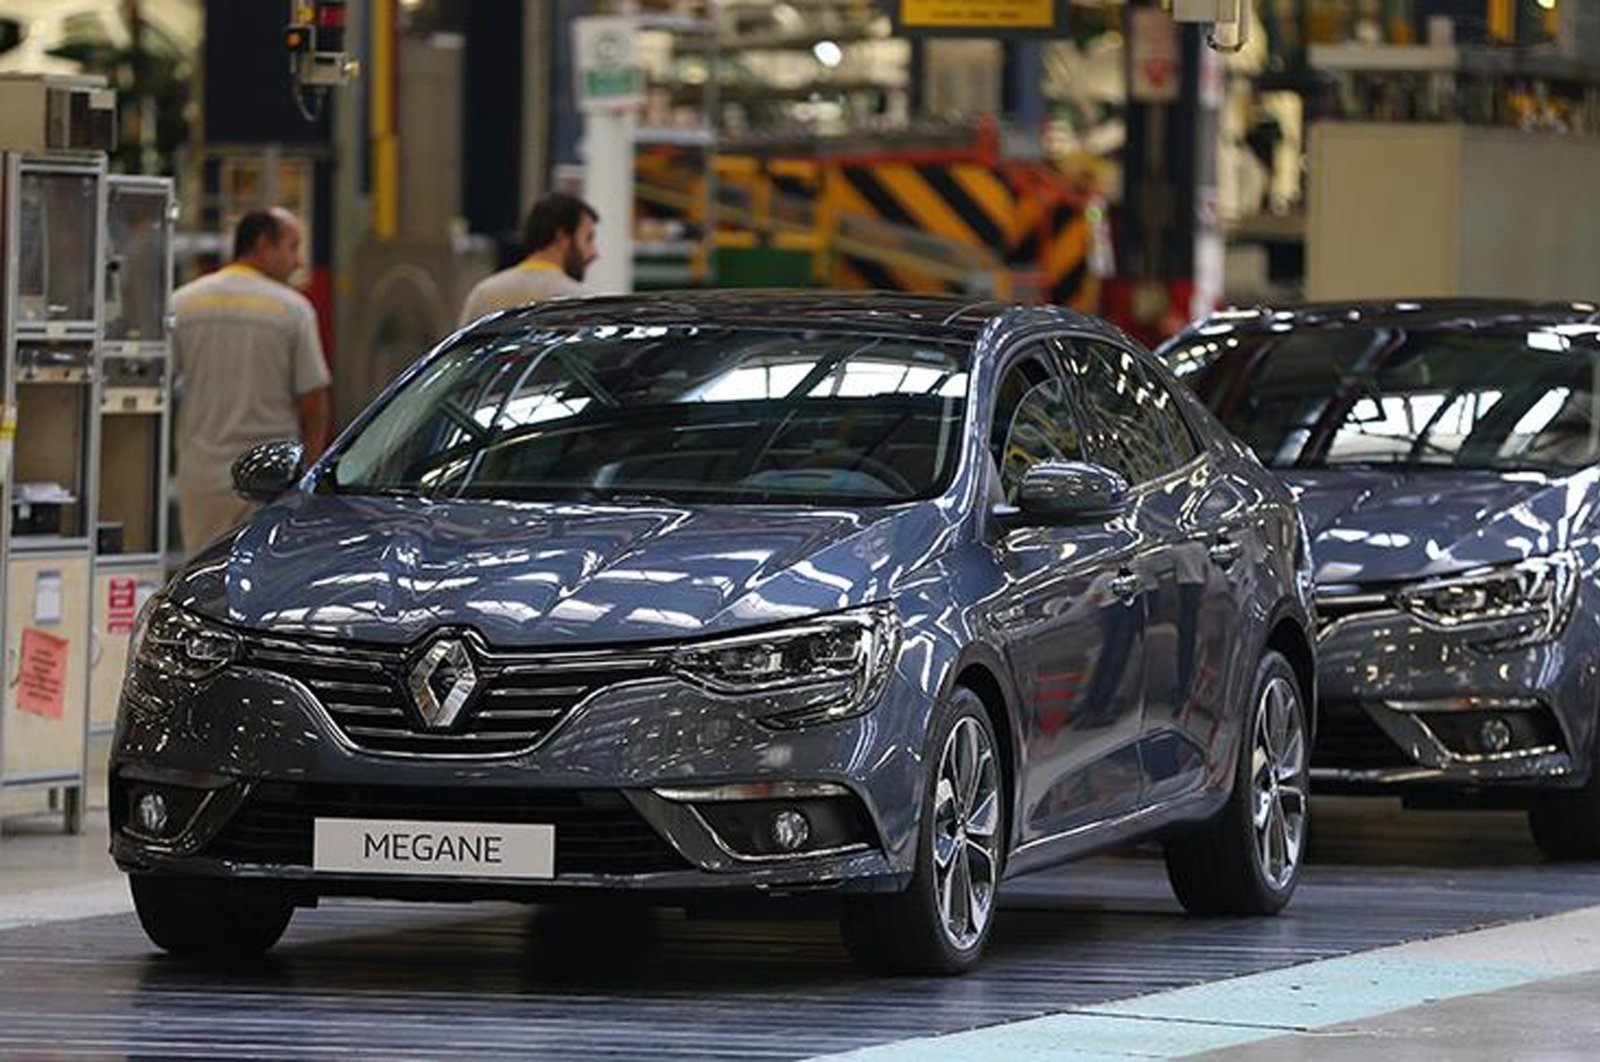 French automaker Renault says it is resuming production at two factories in China and South Korea. (Sabah Photo)